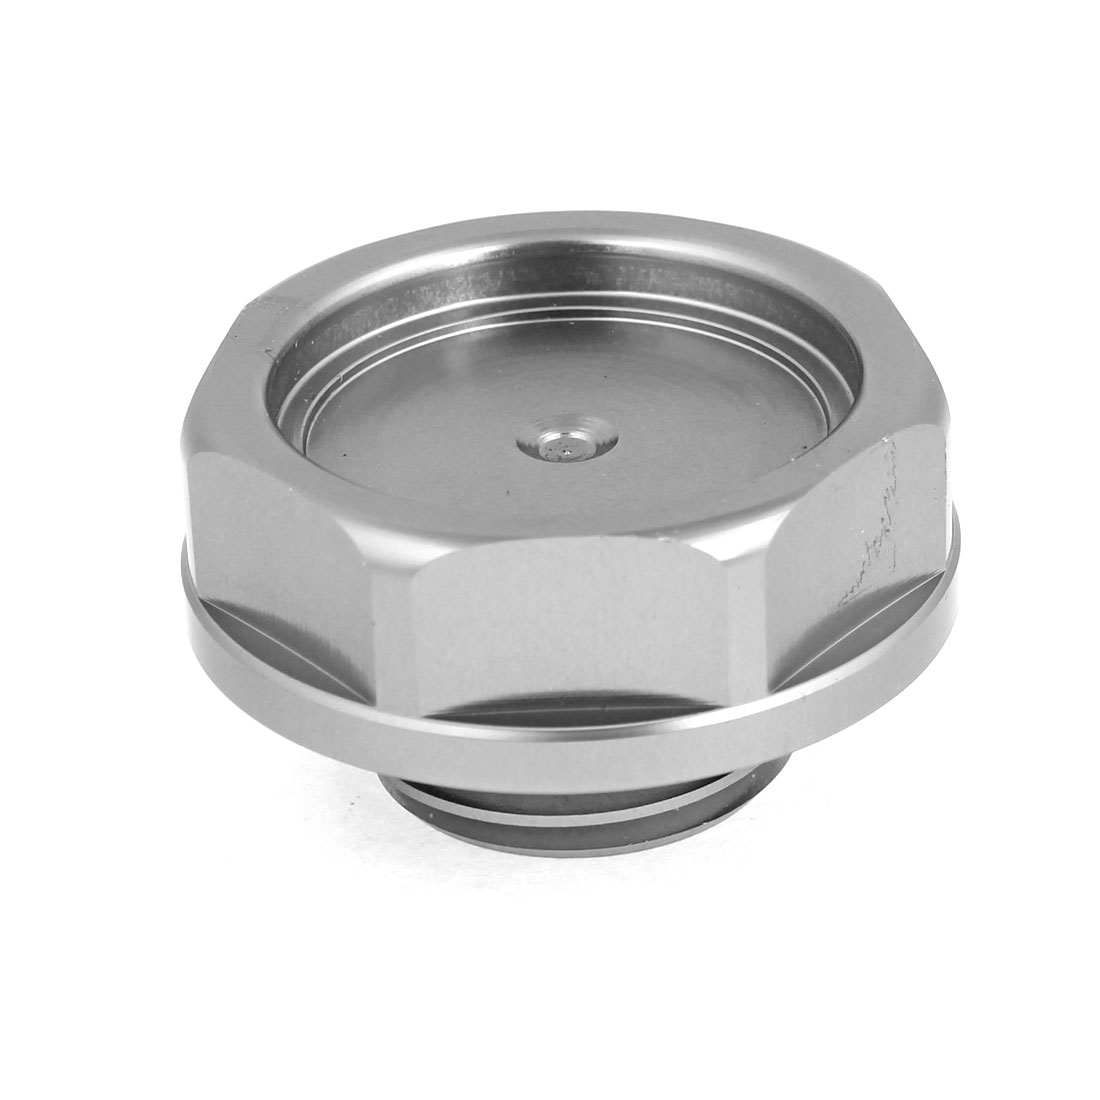 32mm Dia Gray Metal Safety Engine Oil Filler Cover Cap for Car Auto